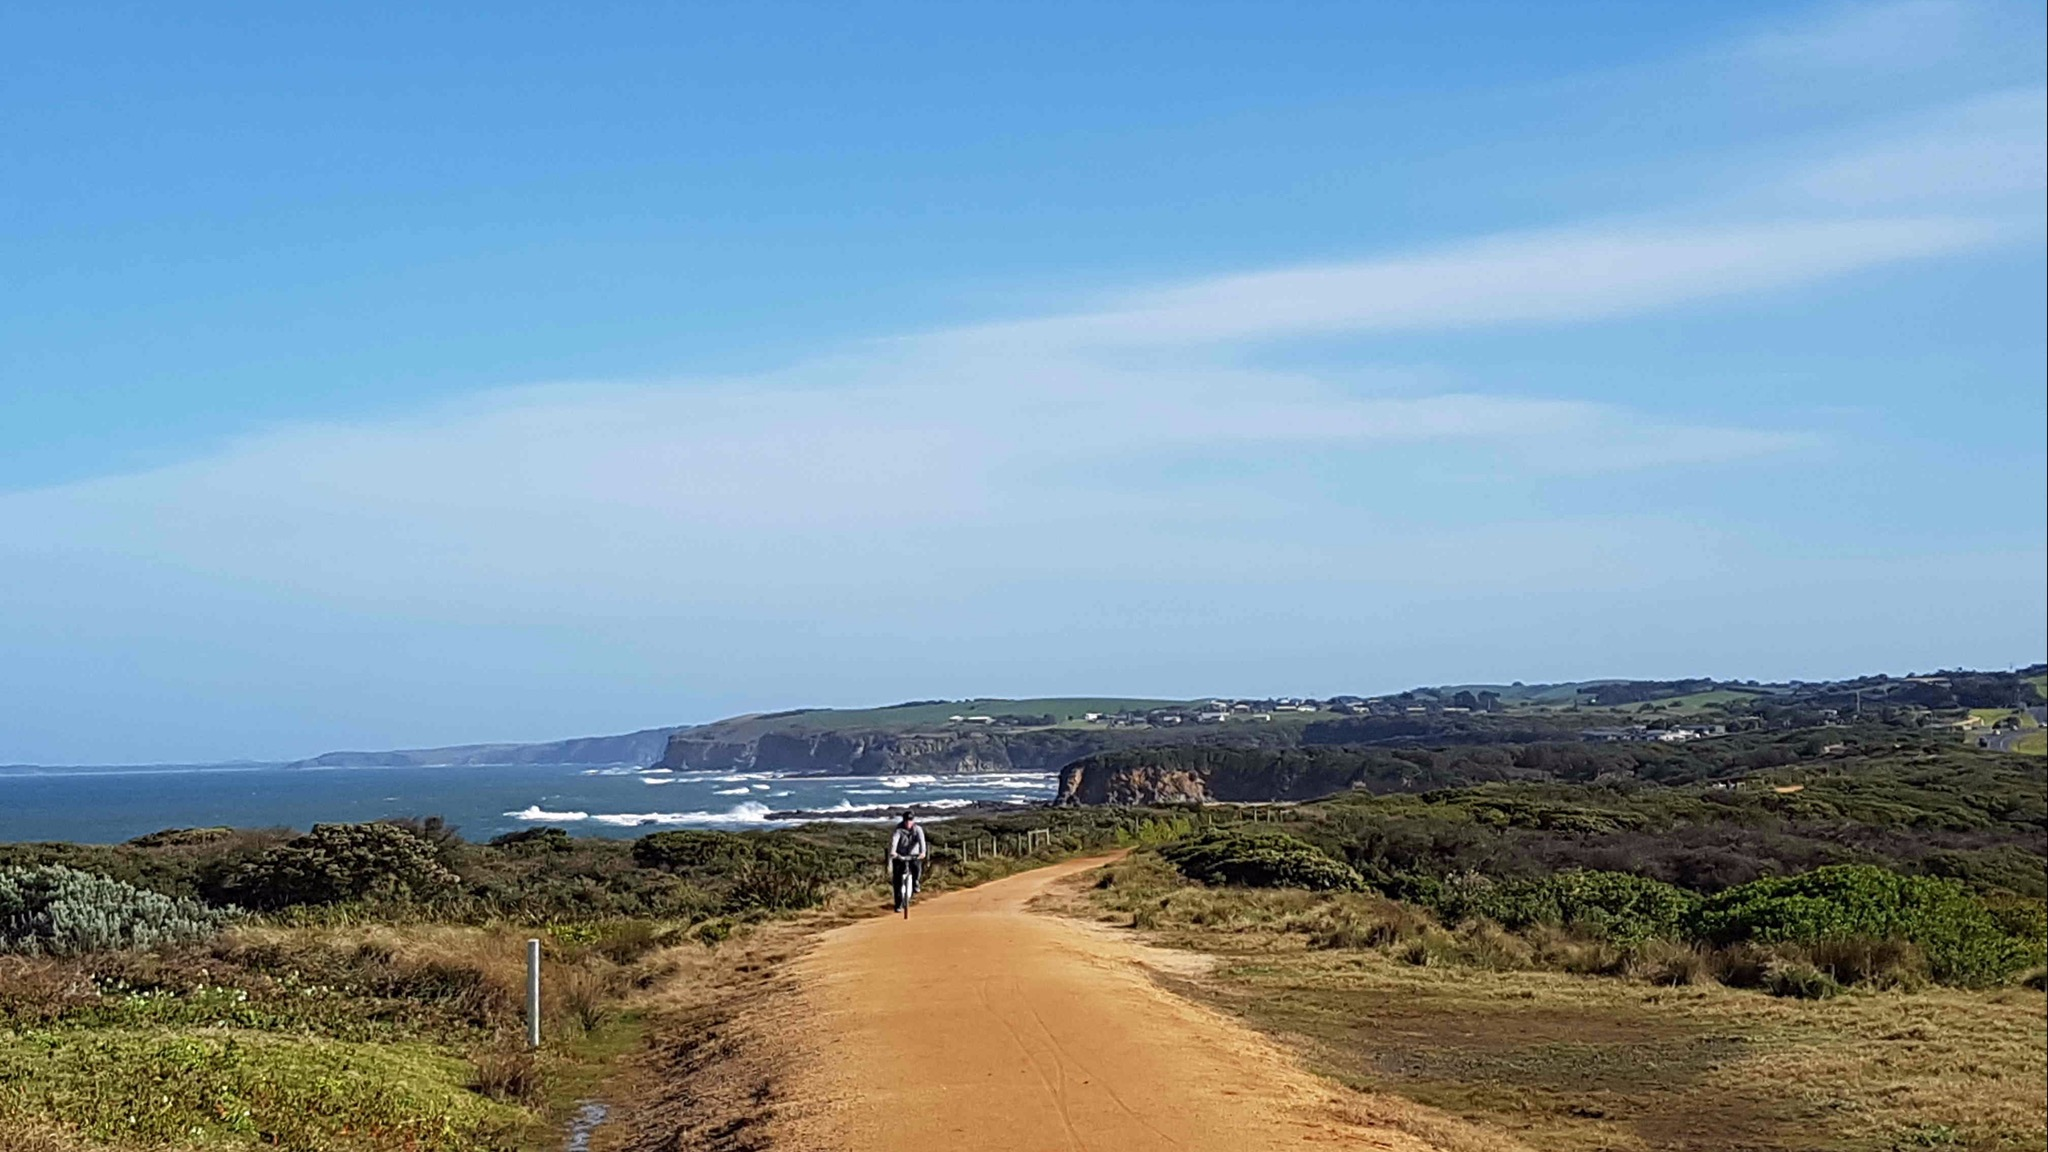 The Bass Coast Rail Trail is the only coastal rail trail in Australia